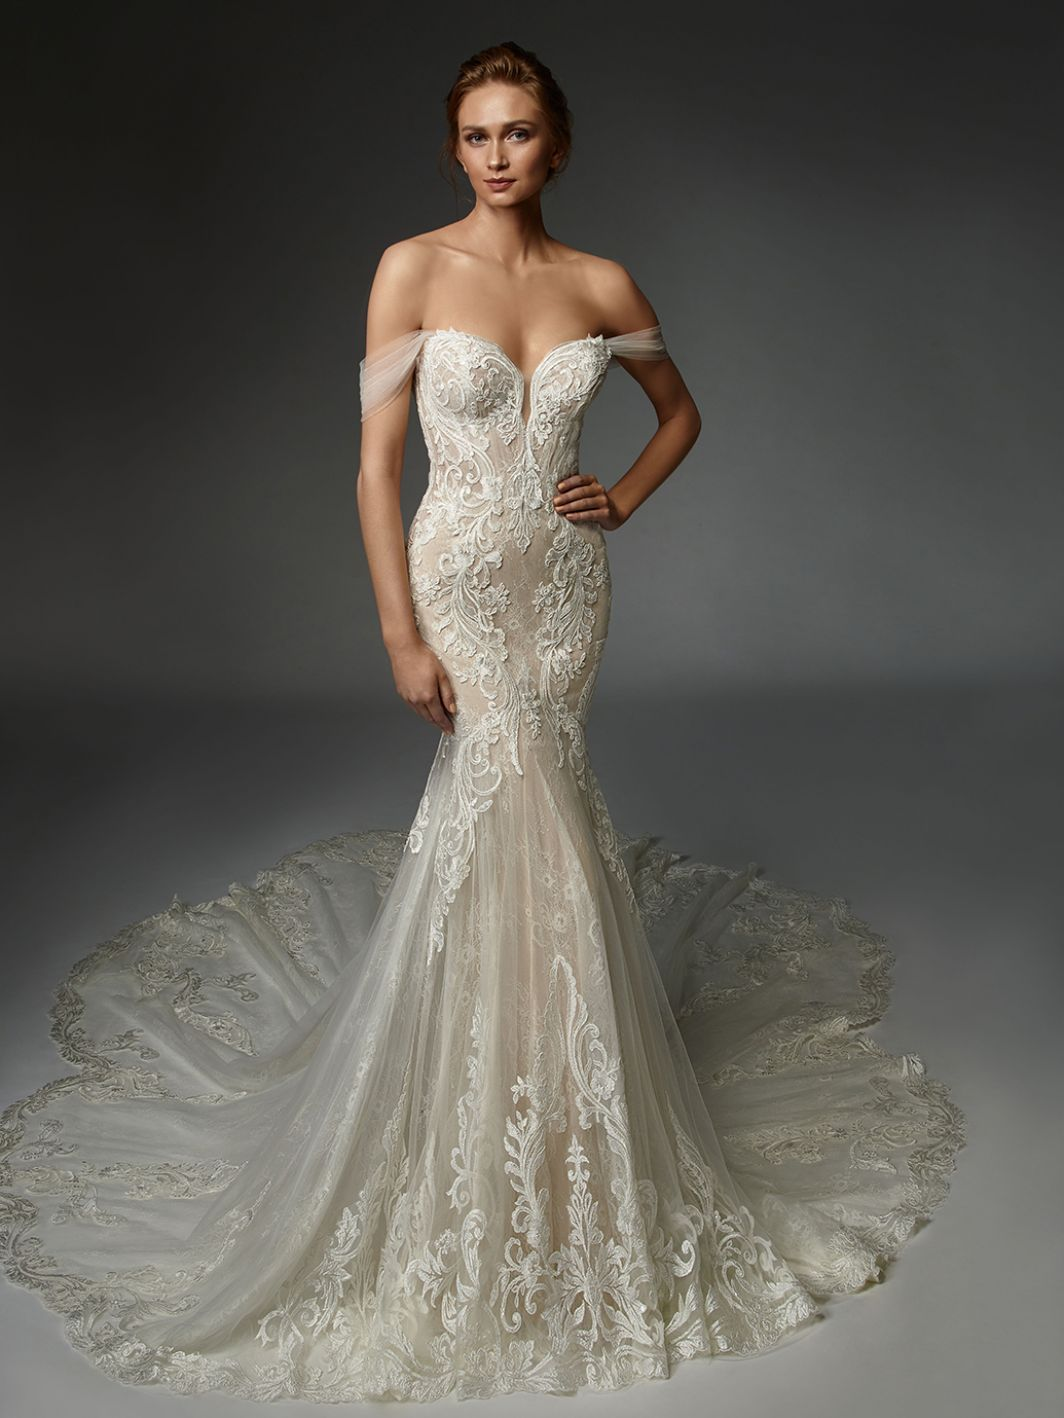 Athénaïs - New, Gown, Élysée by Enzoani - Eternal Bridal